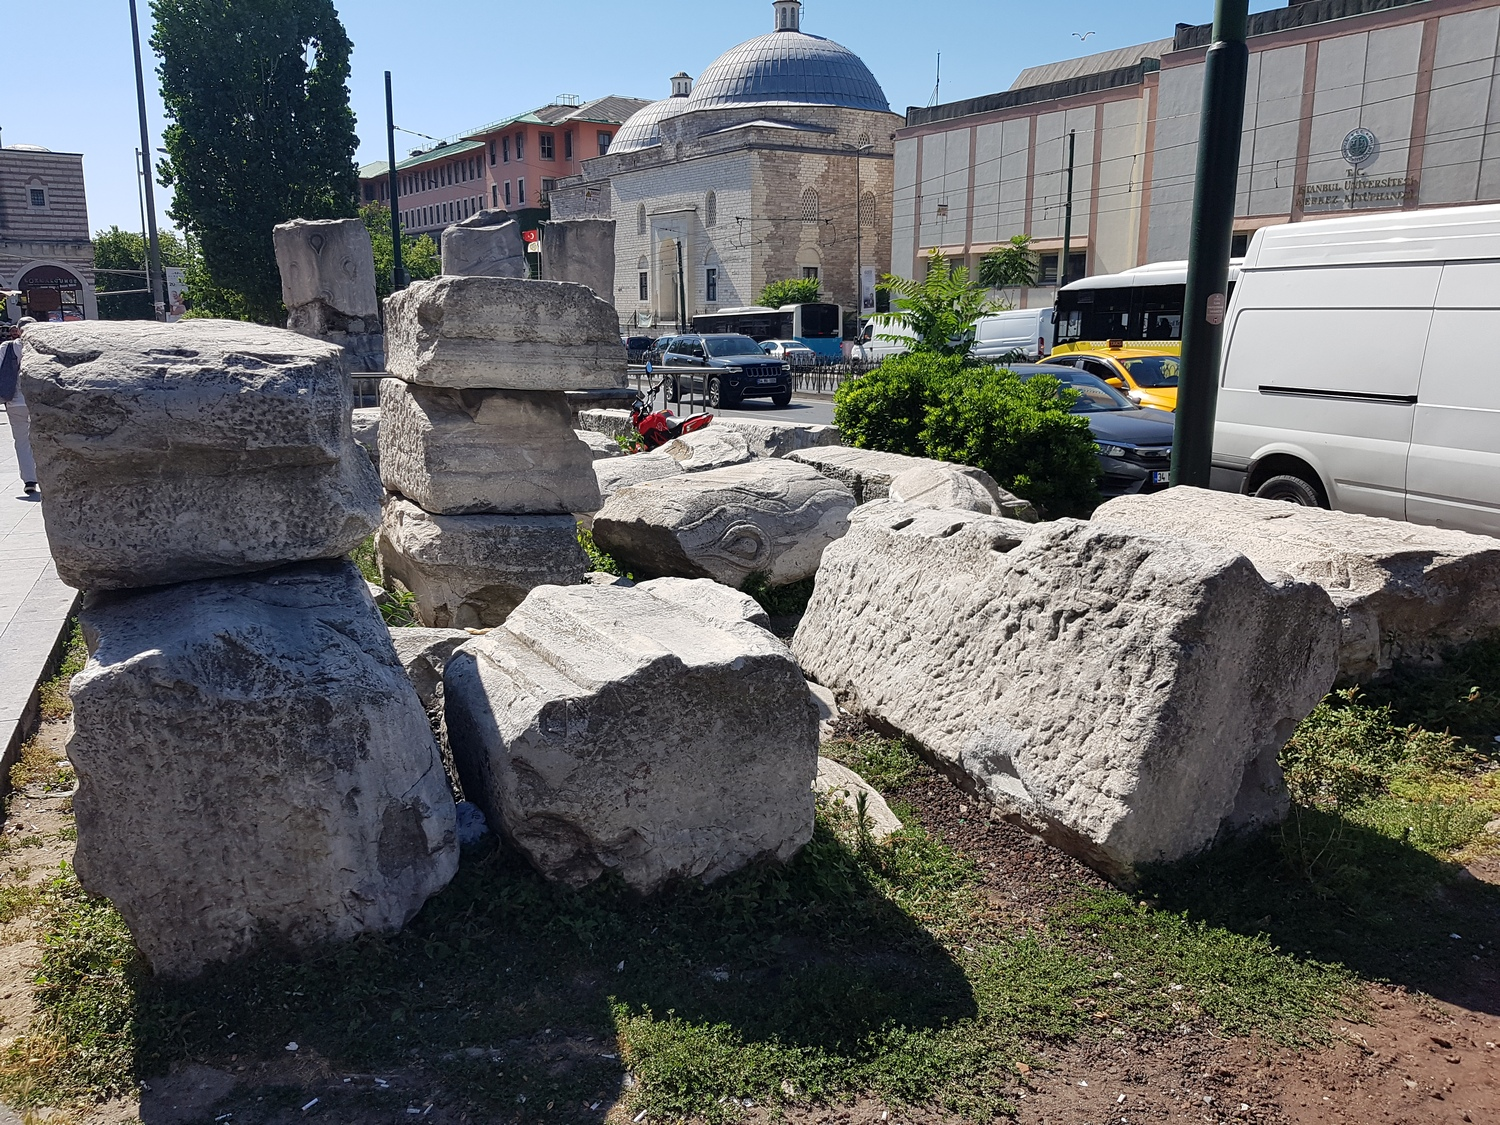 Theodosius Forum fragments with the Beyazıt Hamam building in the background